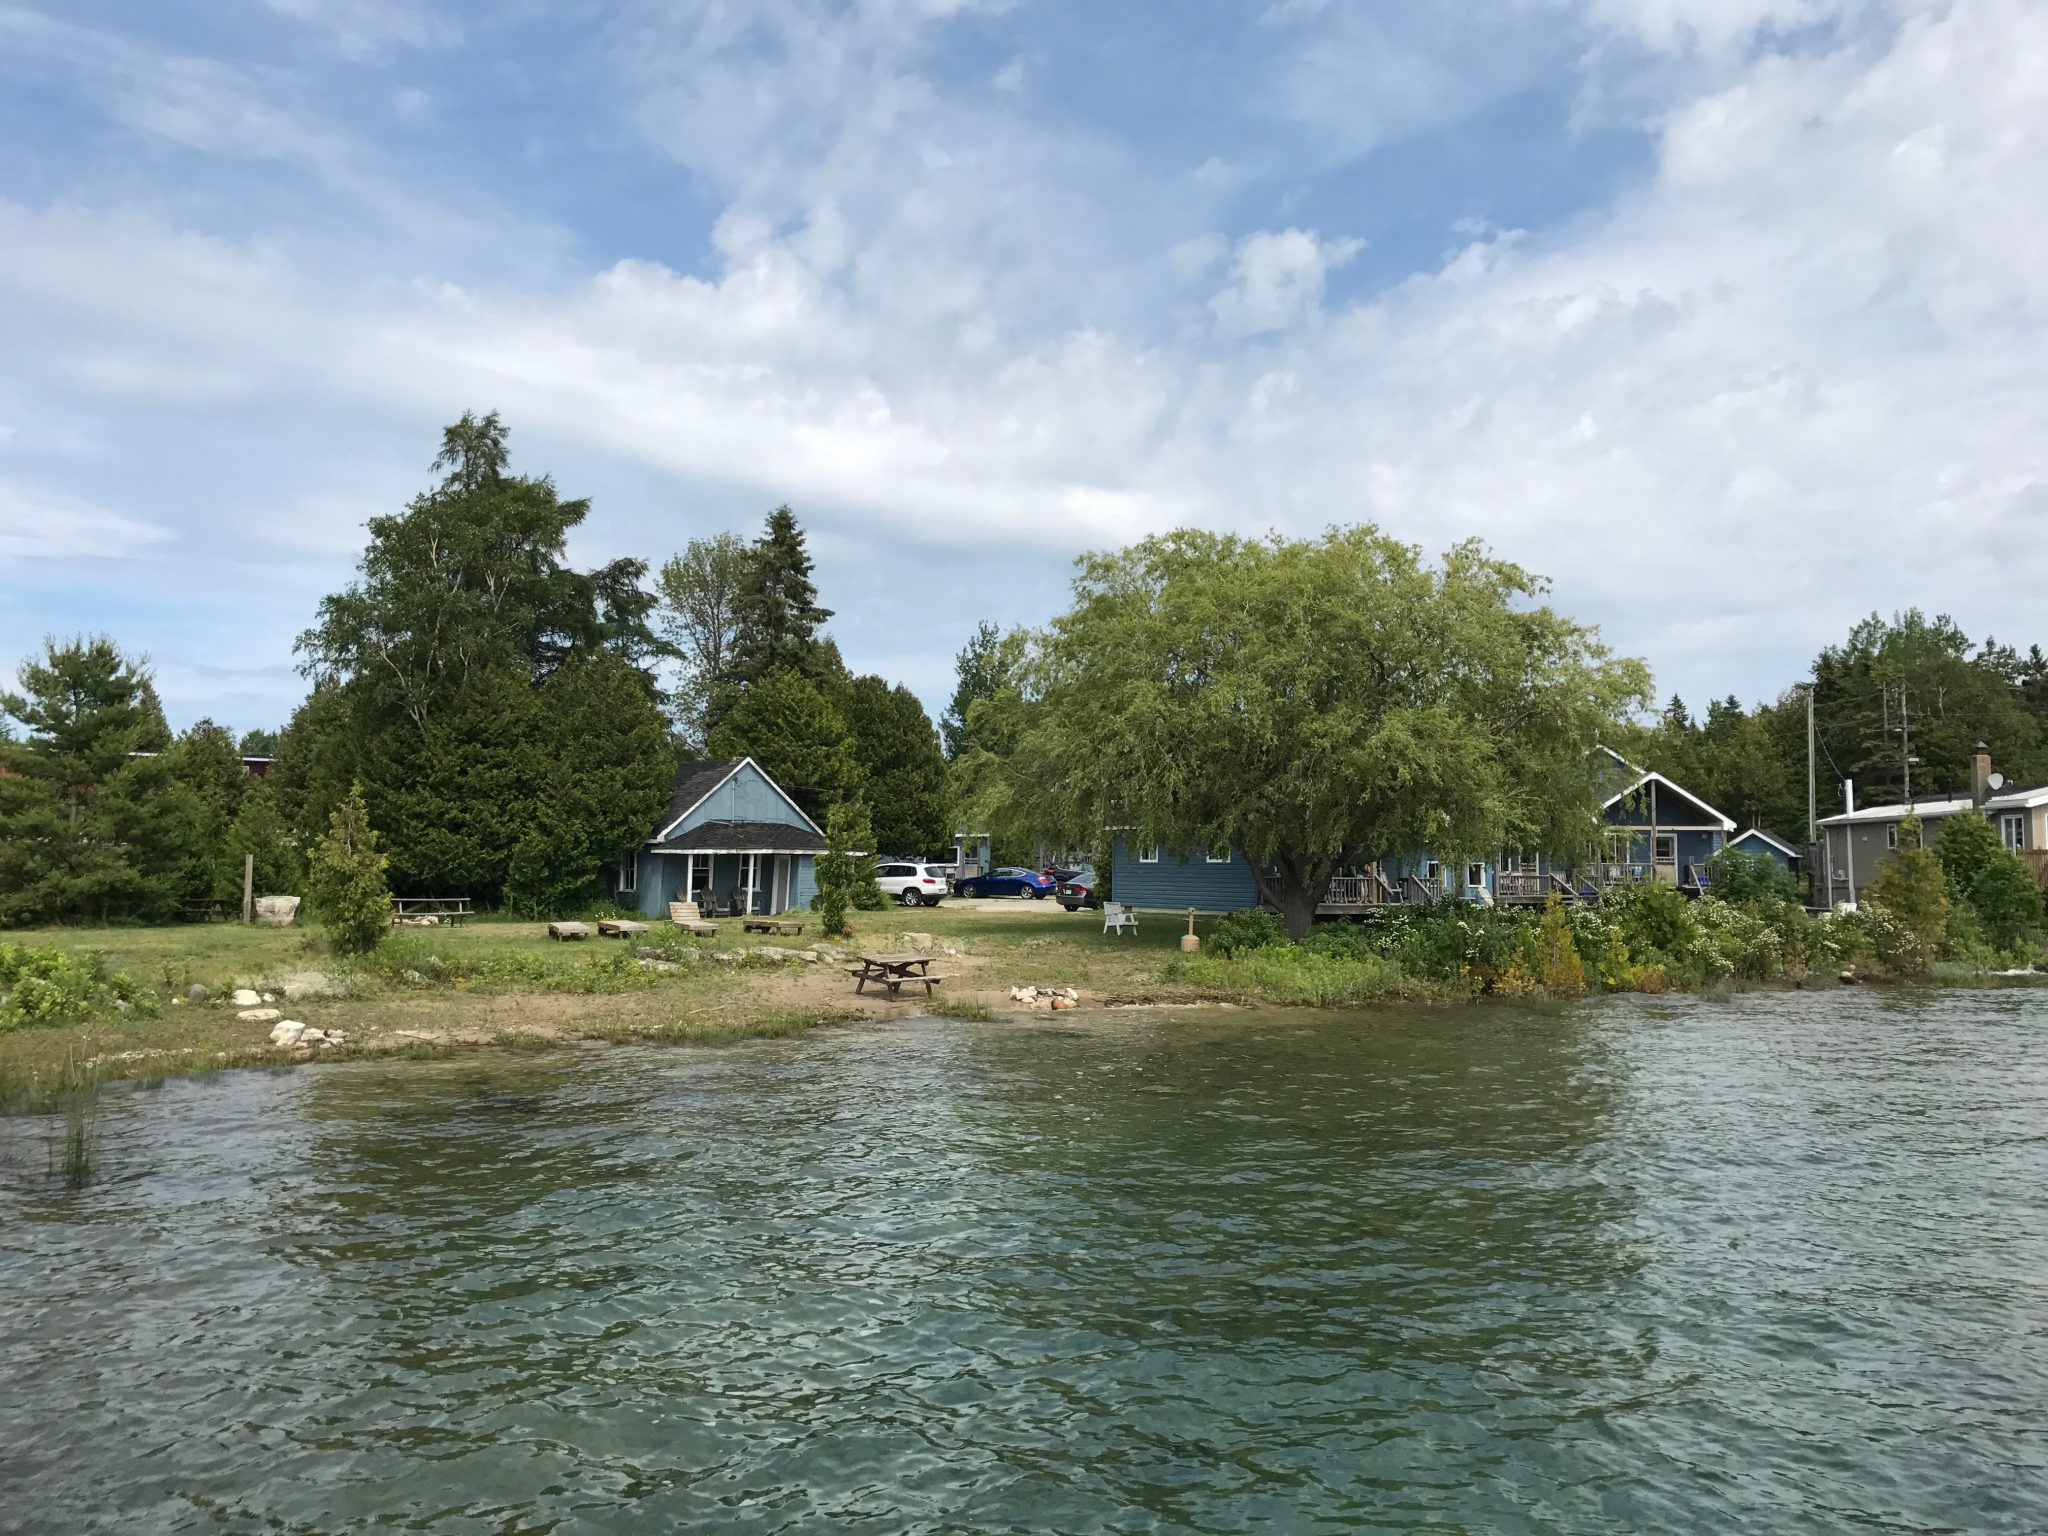 Wireless cottages i Tobermory på Bruce Pensinsula i Ontario